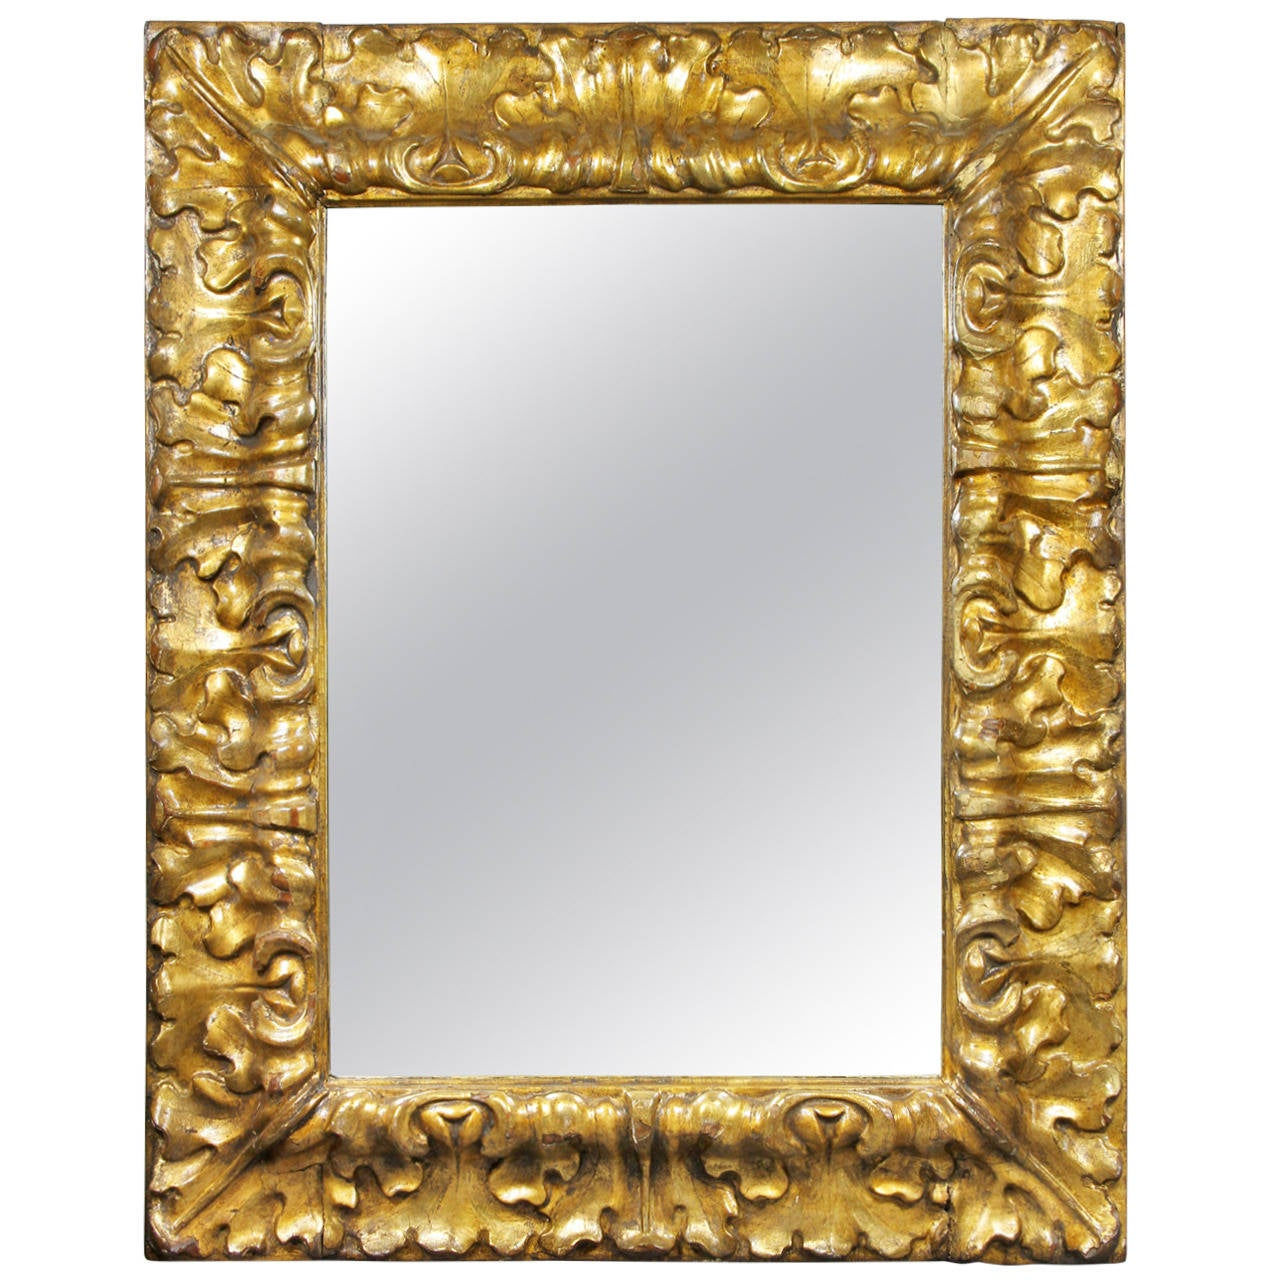 Italian baroque style giltwood mirror for sale at 1stdibs for Baroque mirror